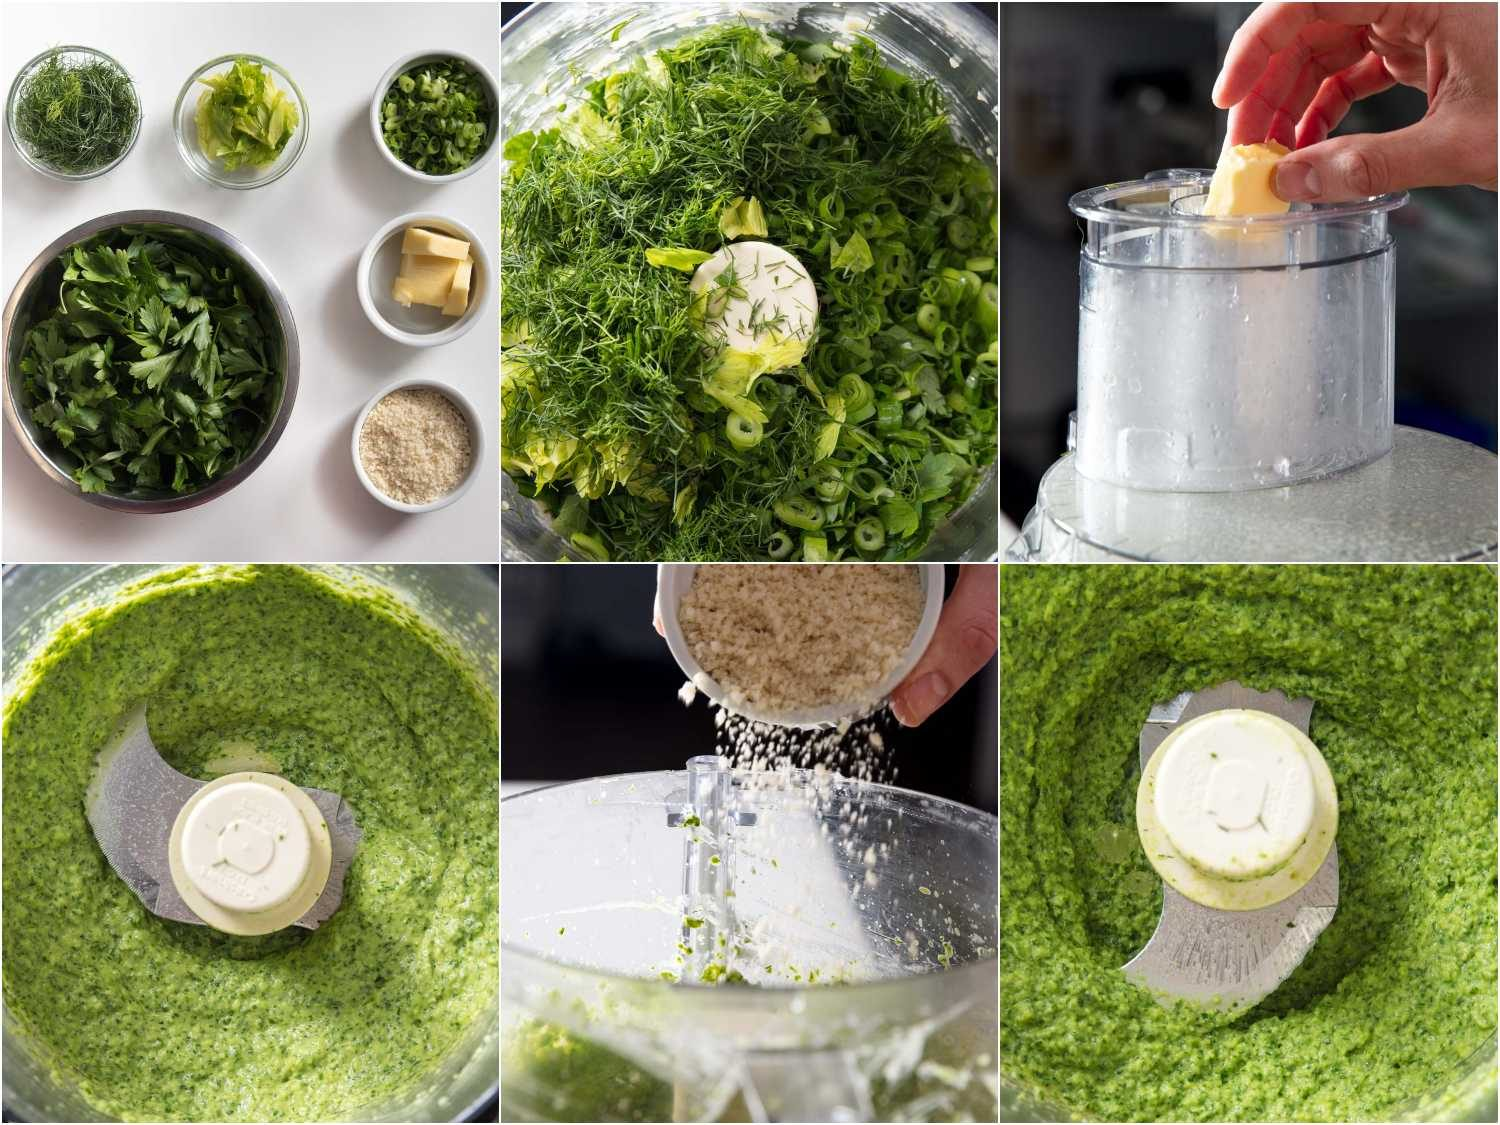 Processing herb topping for oysters Rockefeller